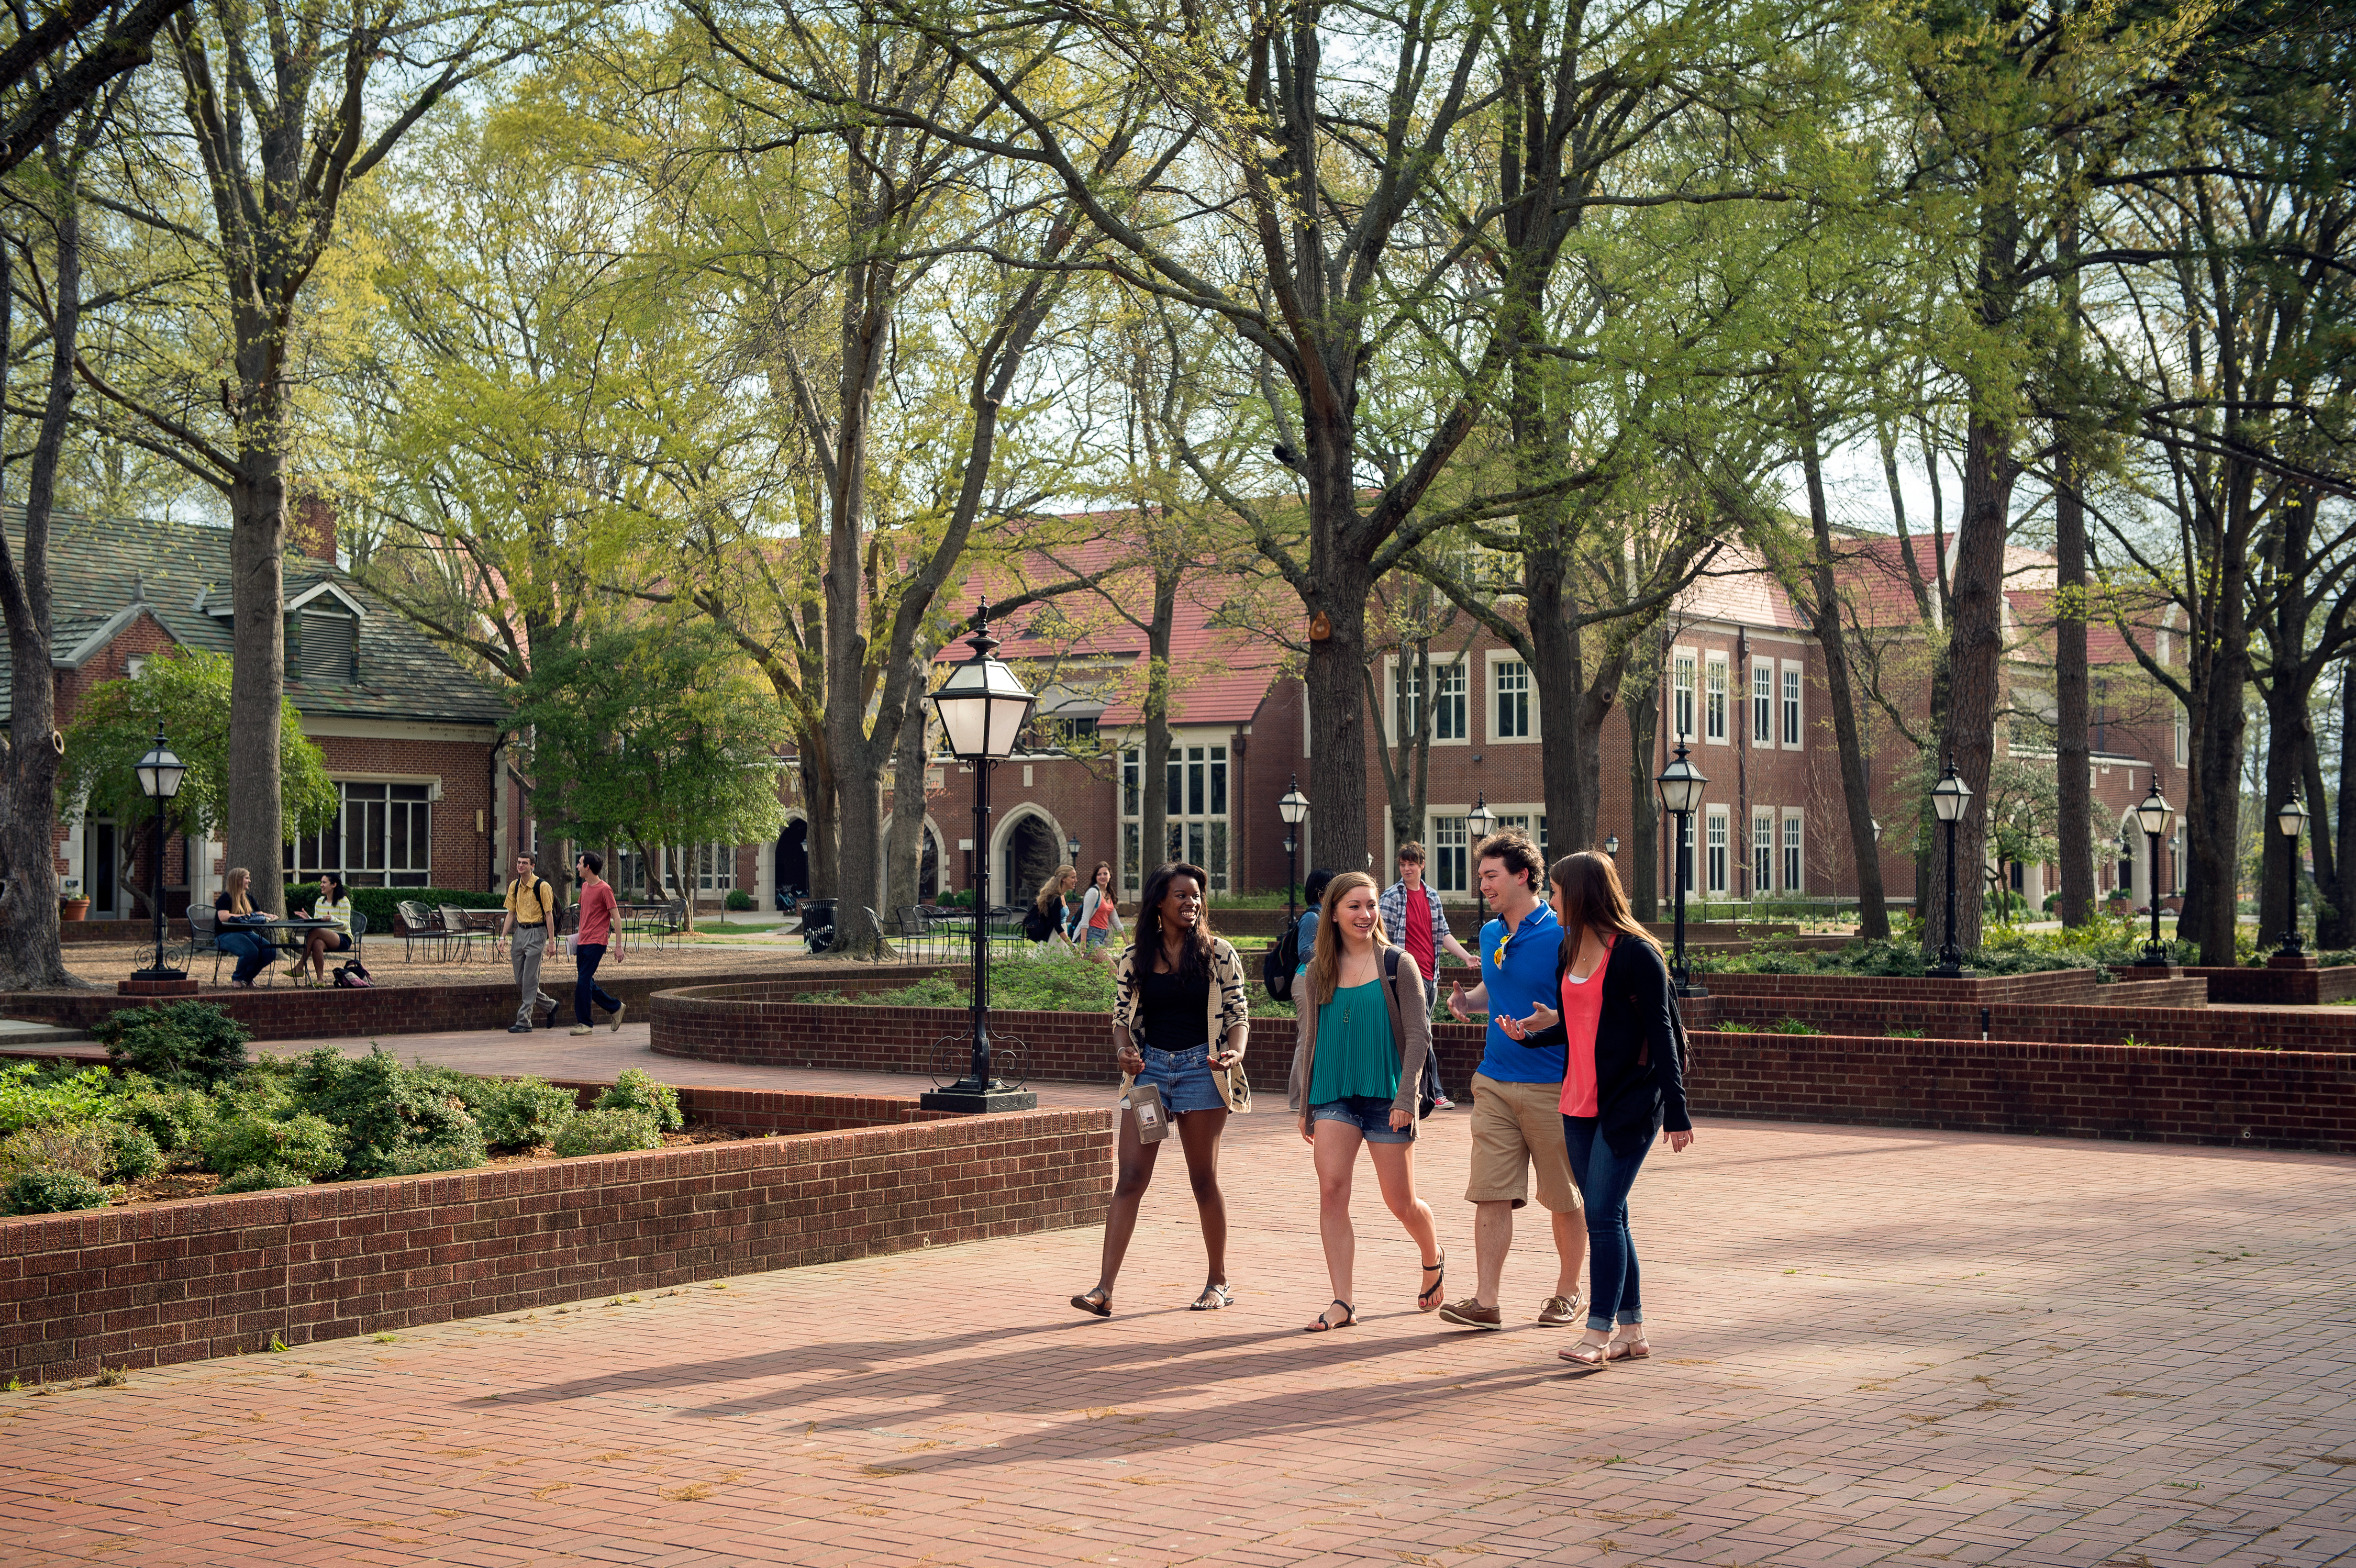 170815-merit-colleges-by-state-hendrix-college